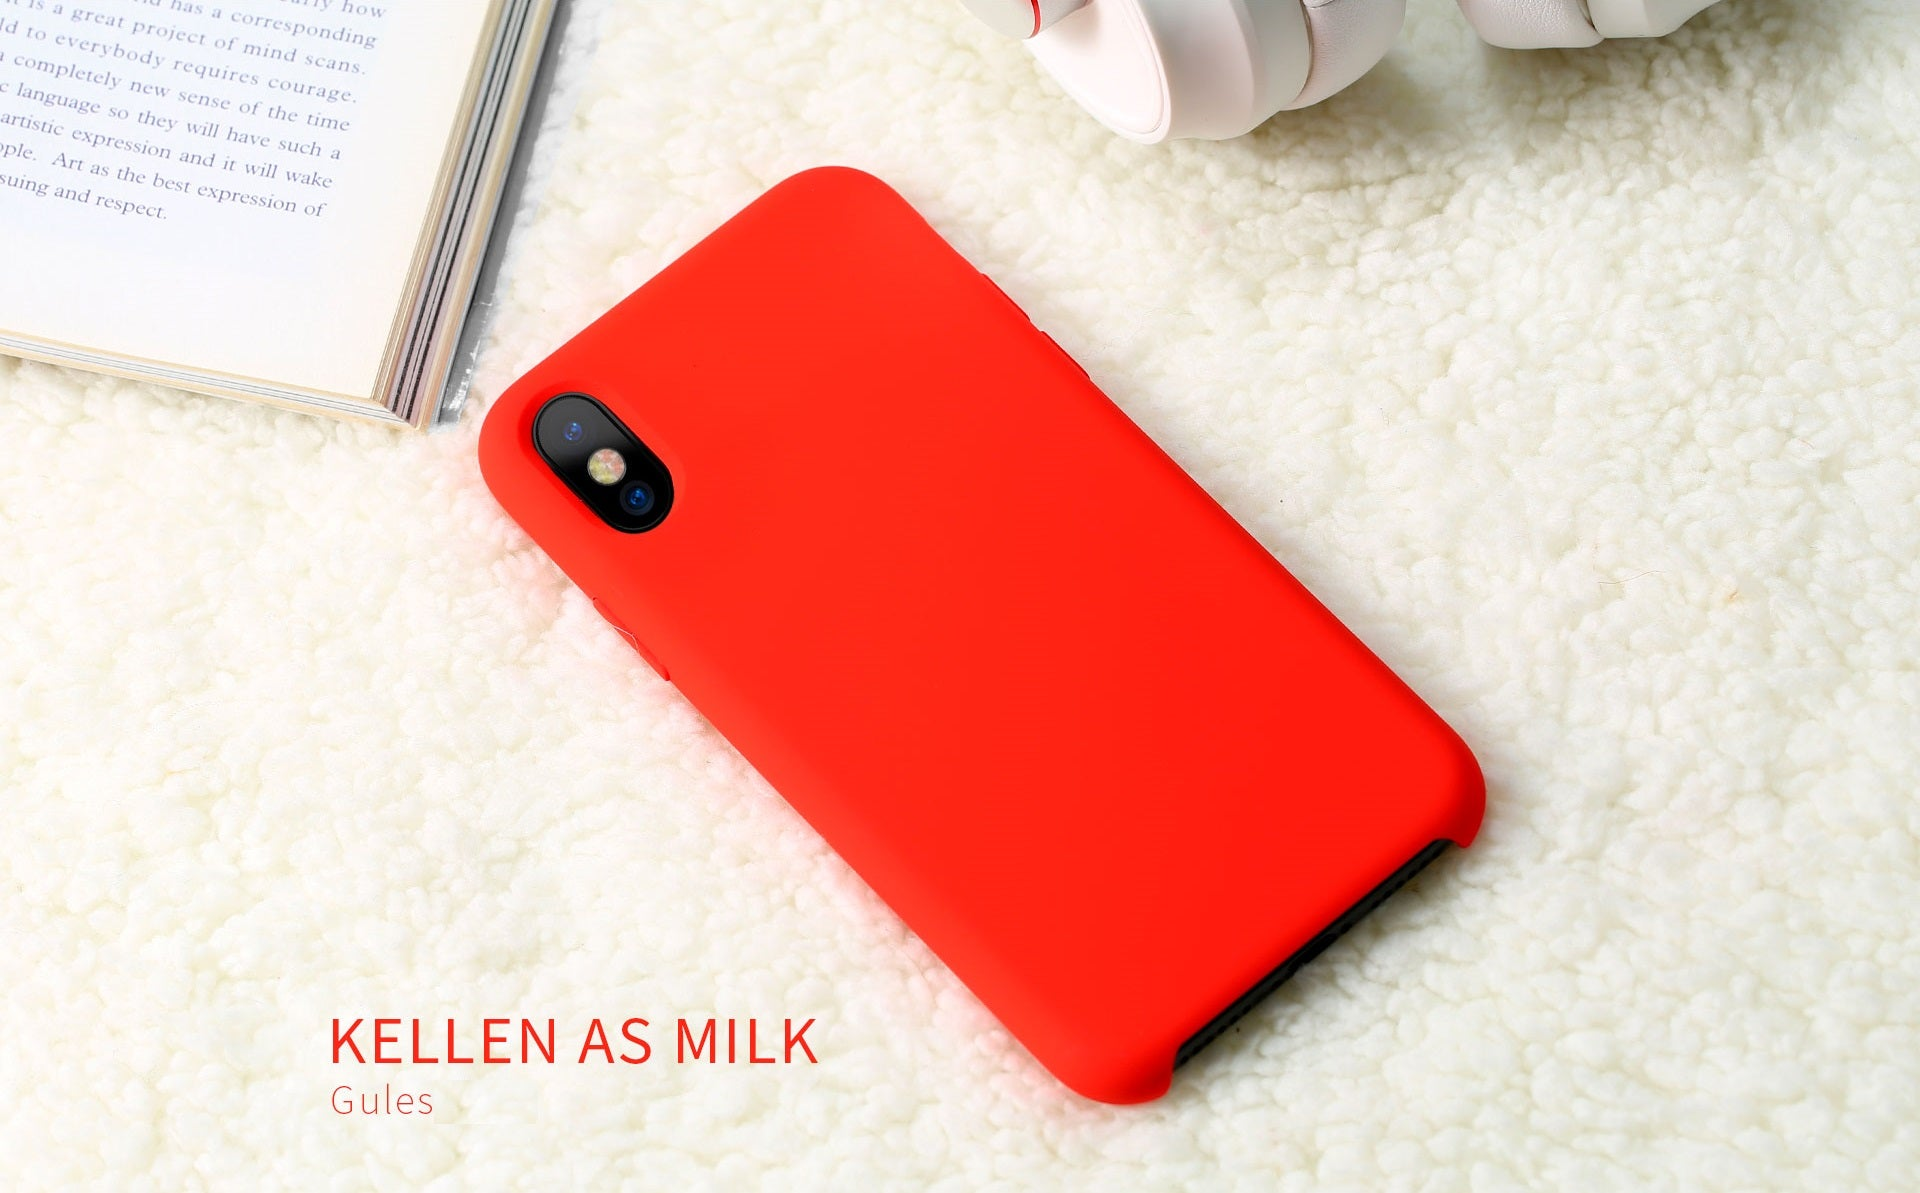 REMAX USA #1 Best Apple iPhone iPad Samsung Galaxy Note Cell Phone Mobile High Quality Great Price Accessories Wholesale Supplier Case Kellen iPhone X iPhone 10..